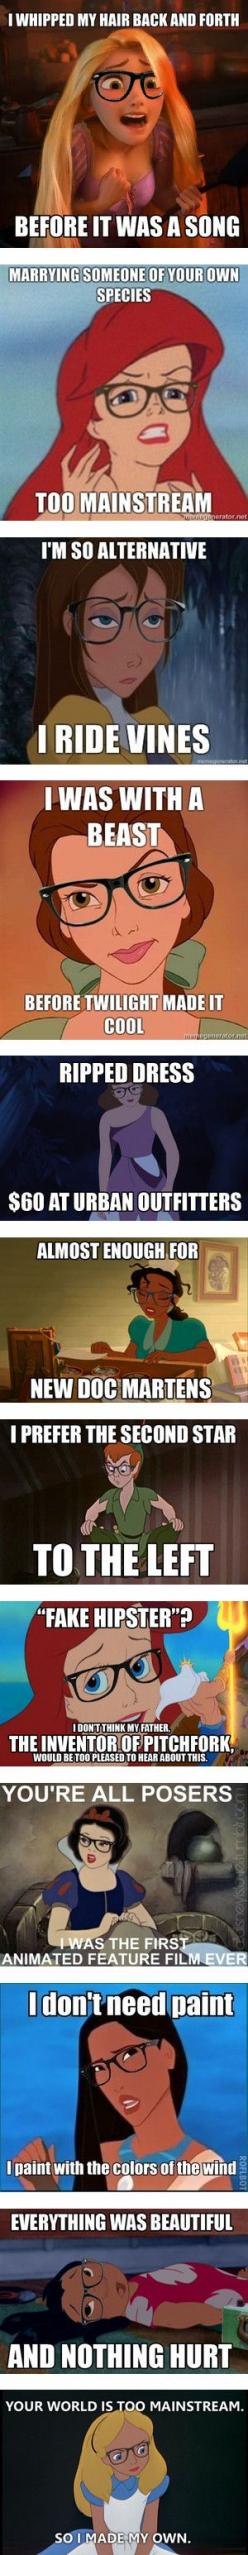 """Hipster Disney Memes"" by bananafrog ❤ liked on Polyvore: Disney Hipster Memes, Hipster Princess, Disney Memes Humor, Bananafrog, Hipster Disney Princess, Disney Funny Memes, Disney Memes Funny, Disney Characters, Disney Princess Memes"